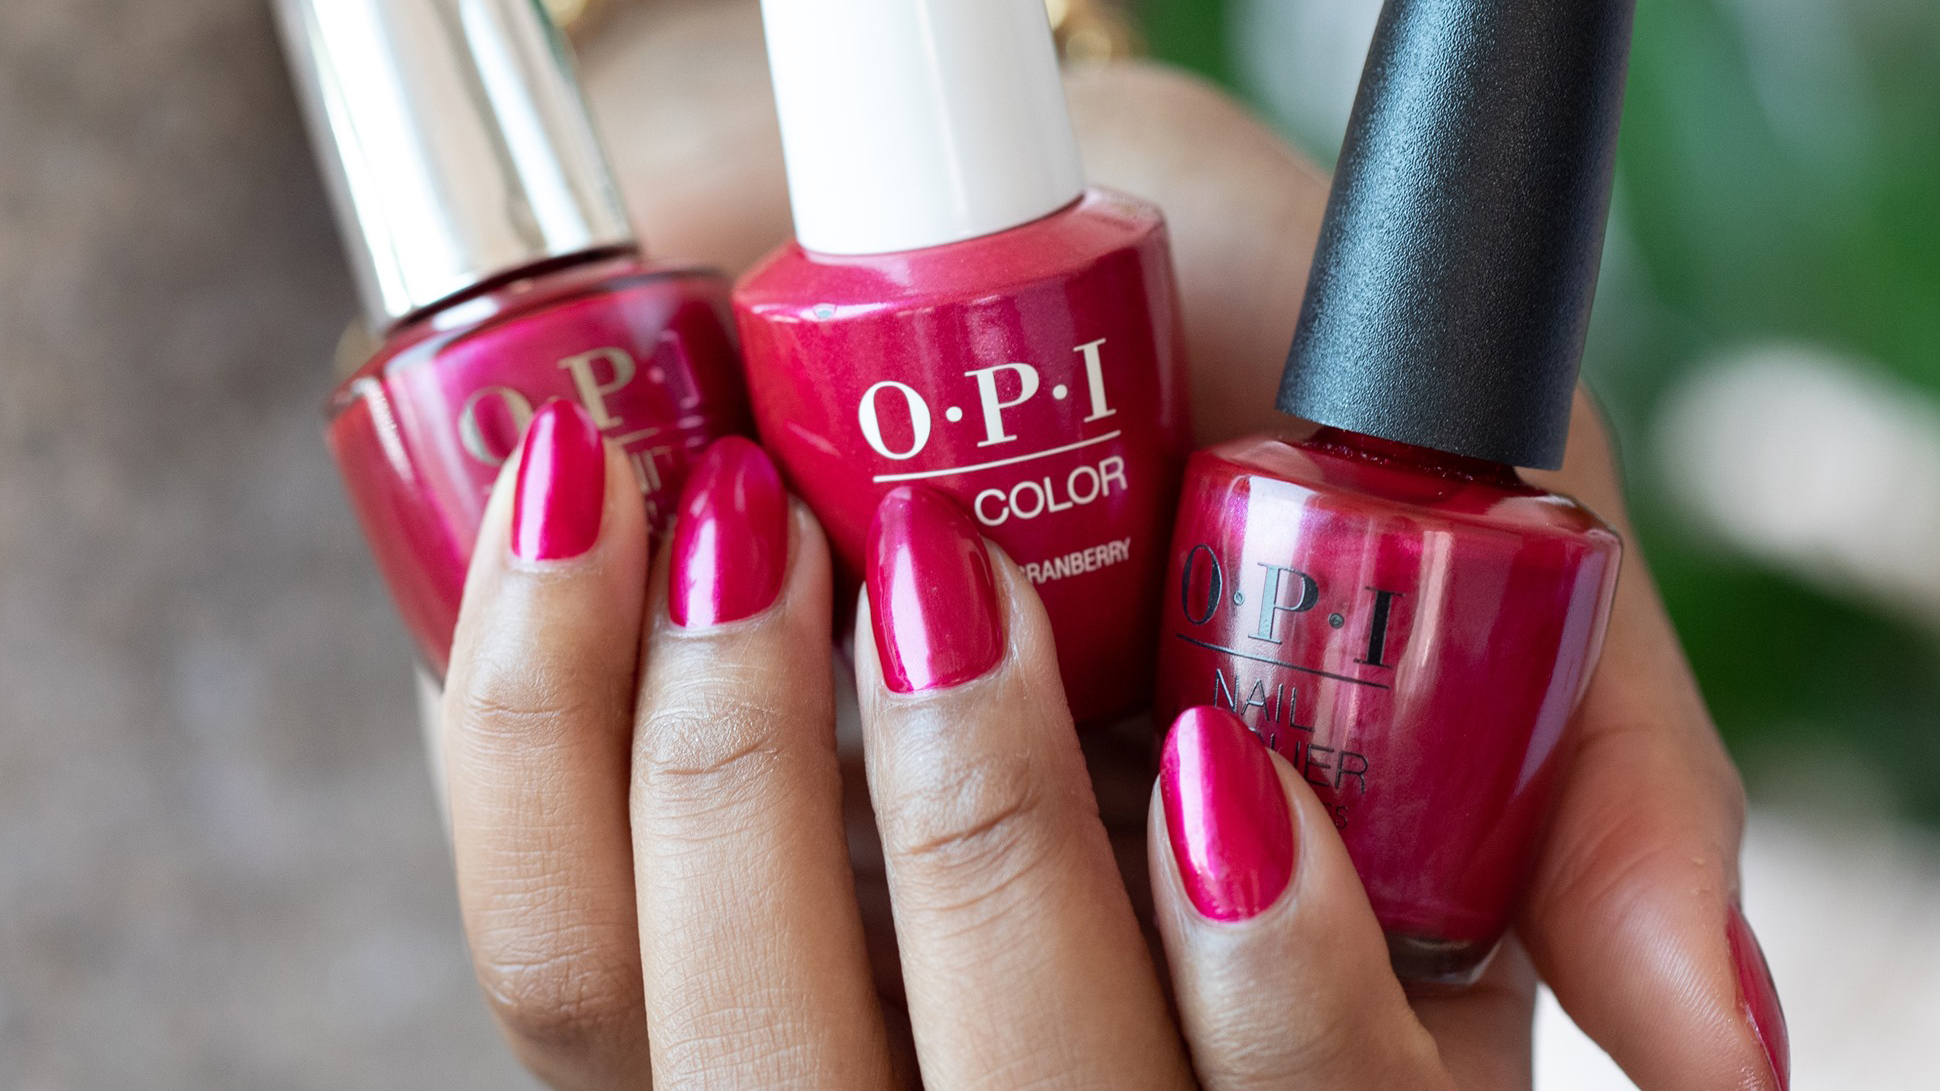 OPI Nail Polish Is On Serious Sale Right Now As Part of Ulta's Black Friday  Event   Southern Living